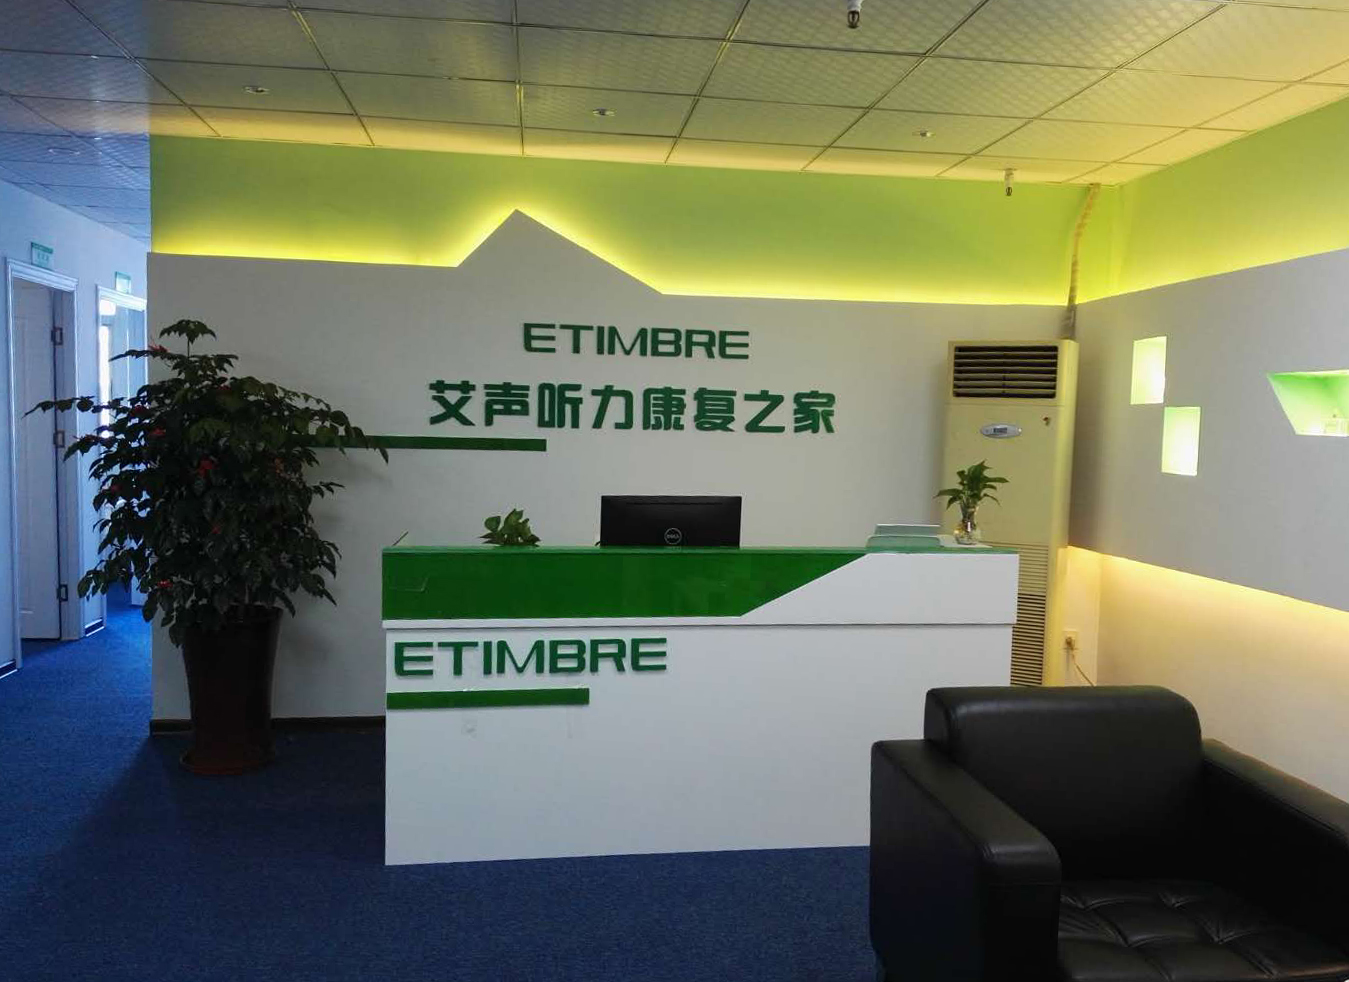 <a href='http://www.etimbre.cc/show-33-54-1.html' style='color:green;' target='_blank'>厦门助听器</a>